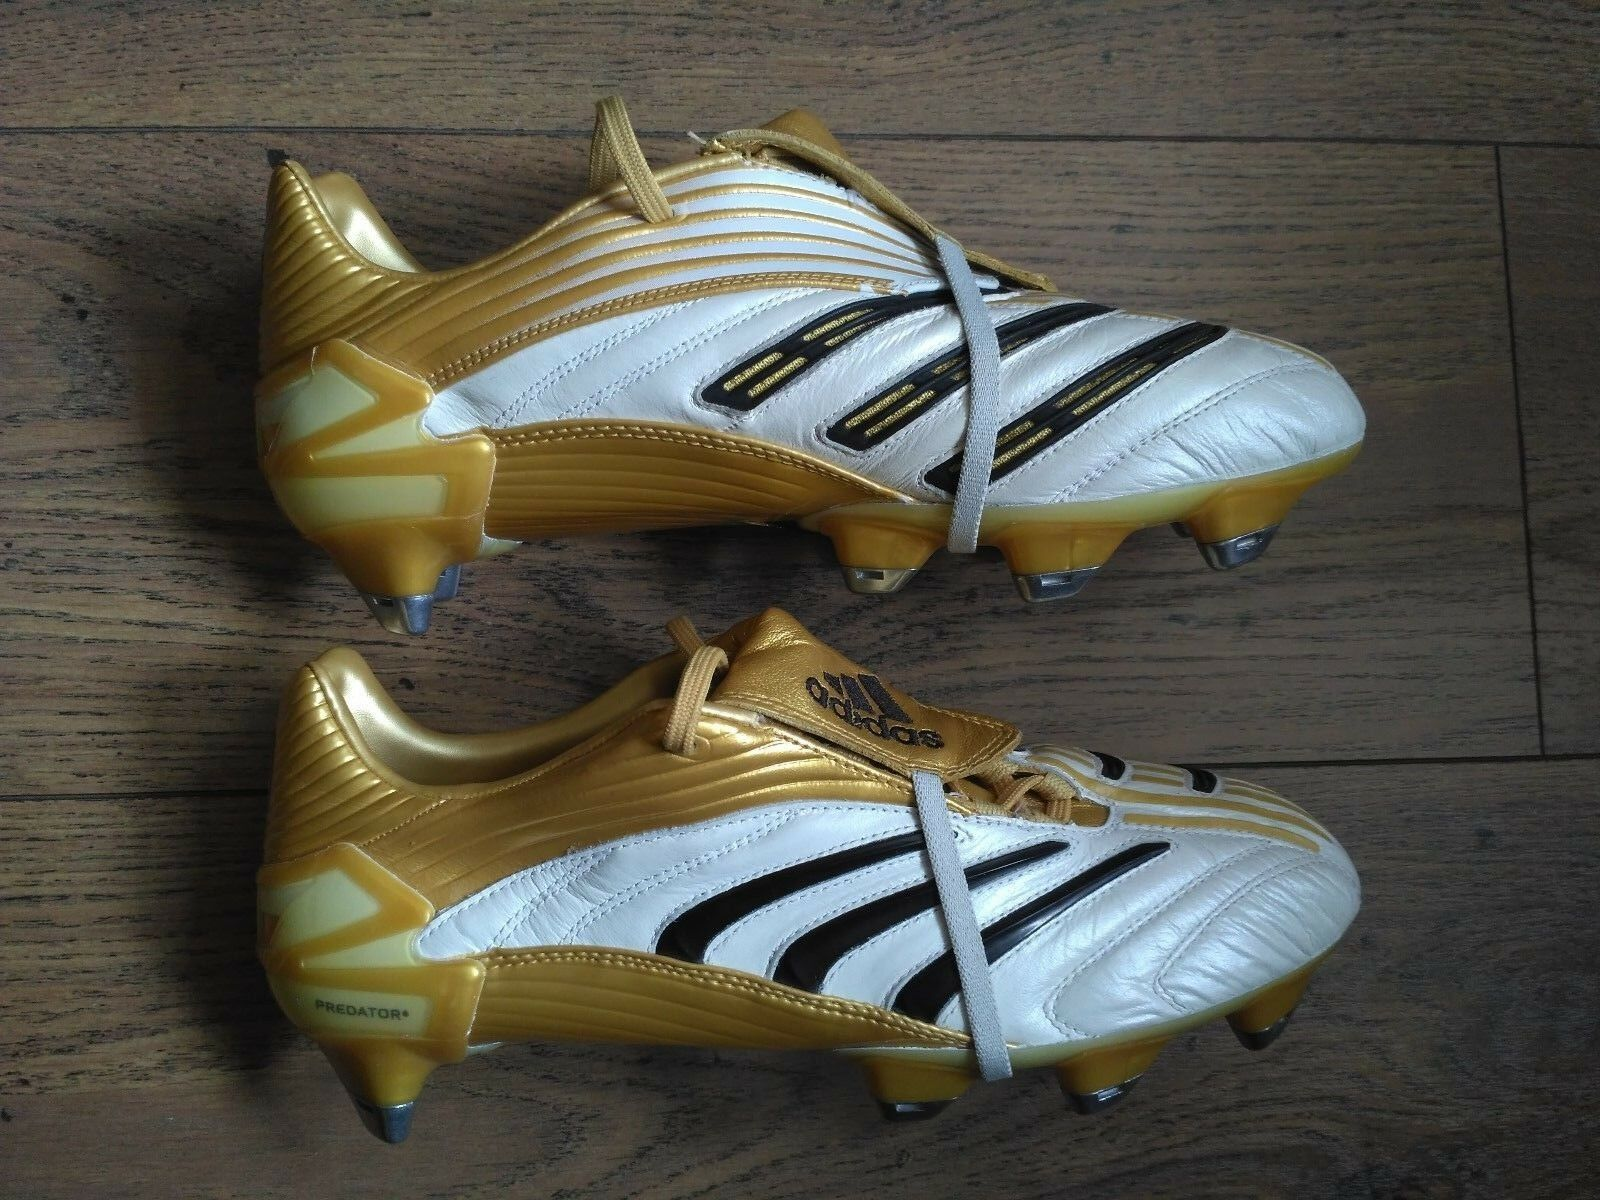 Adidas Prougeator Absolute XTRX SG foot crampons 807840 Taille US8.5 coupe du monde 2006